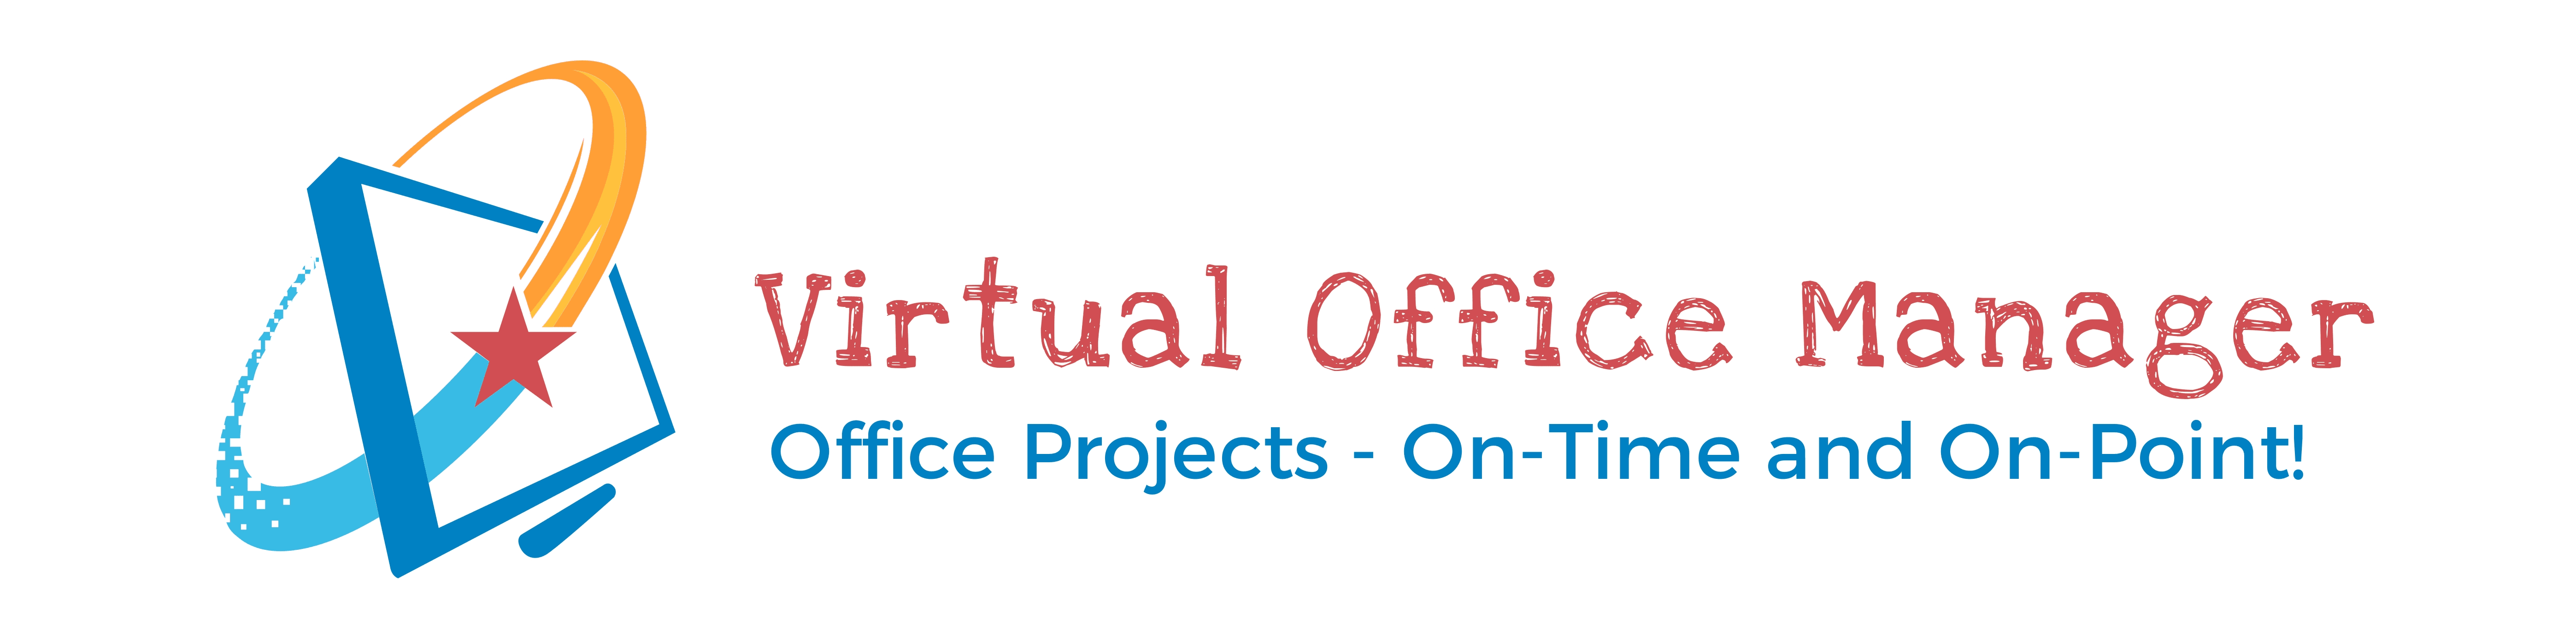 Virtualofficemgr